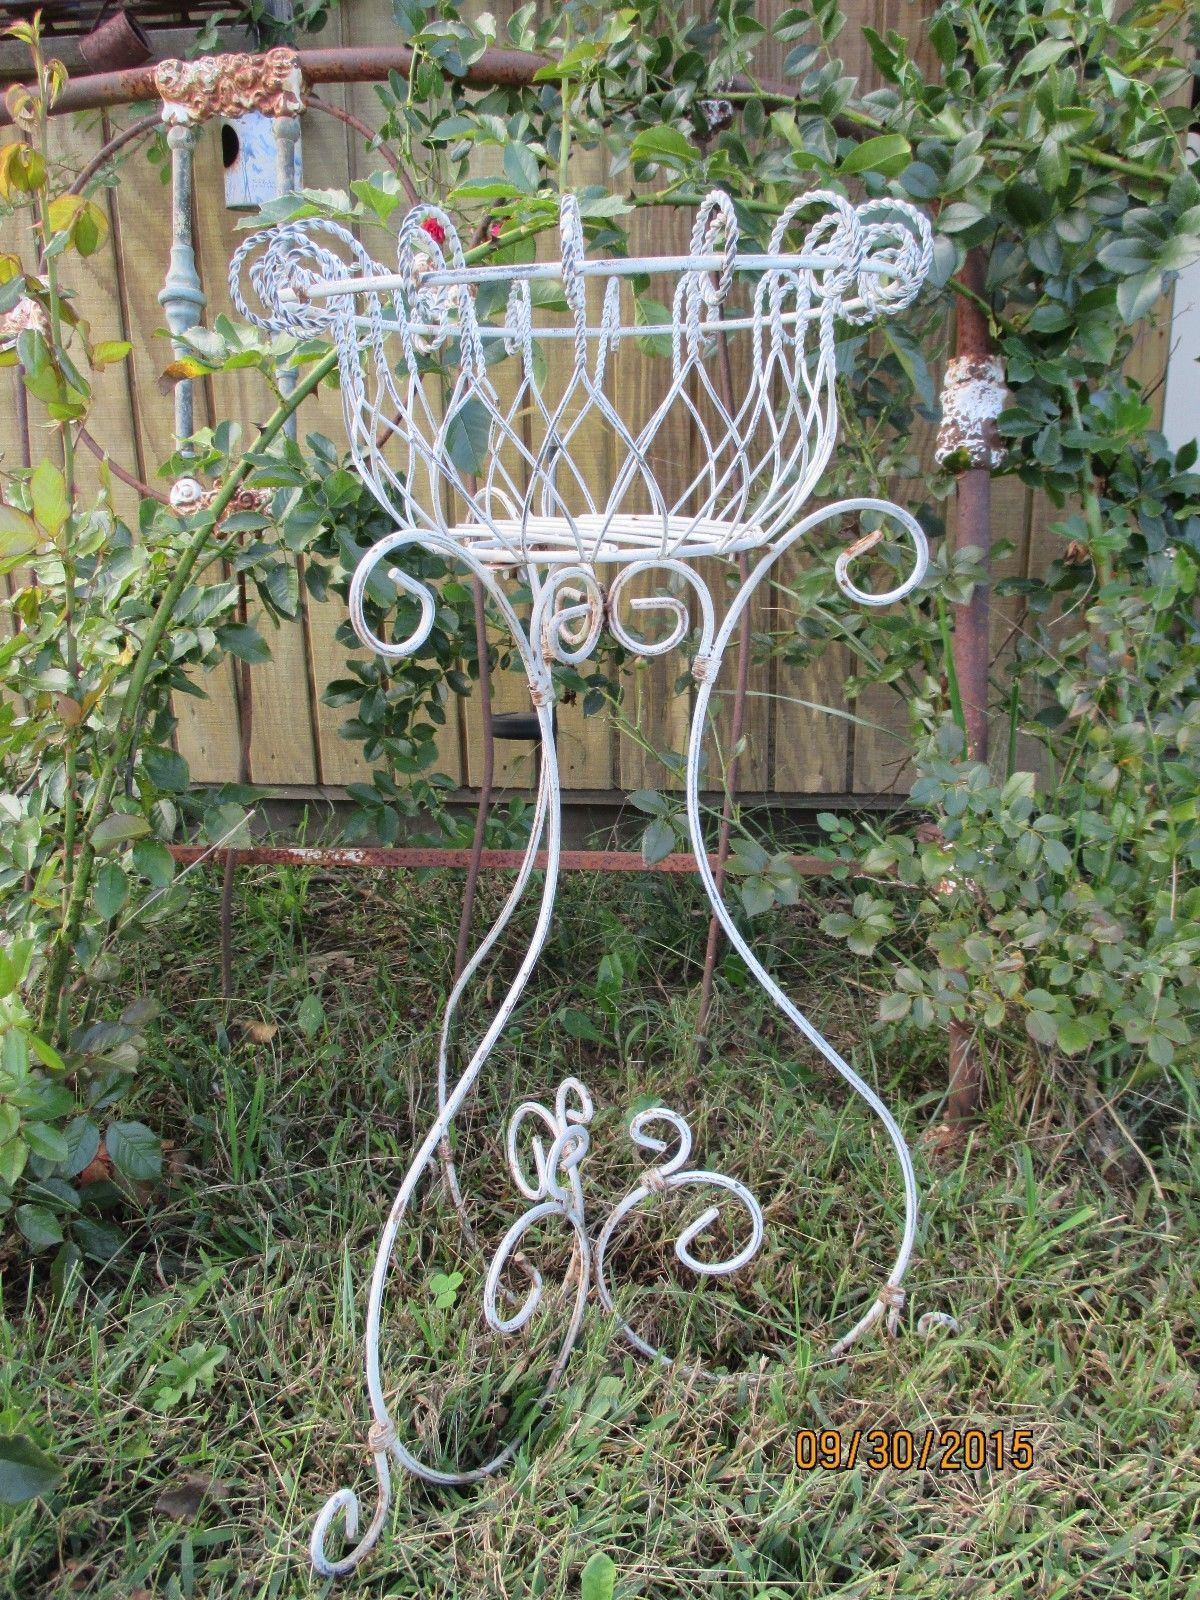 Plant Stands On Wheels Details About Vintage 3 Wheel Trike Metal Iron Rustic